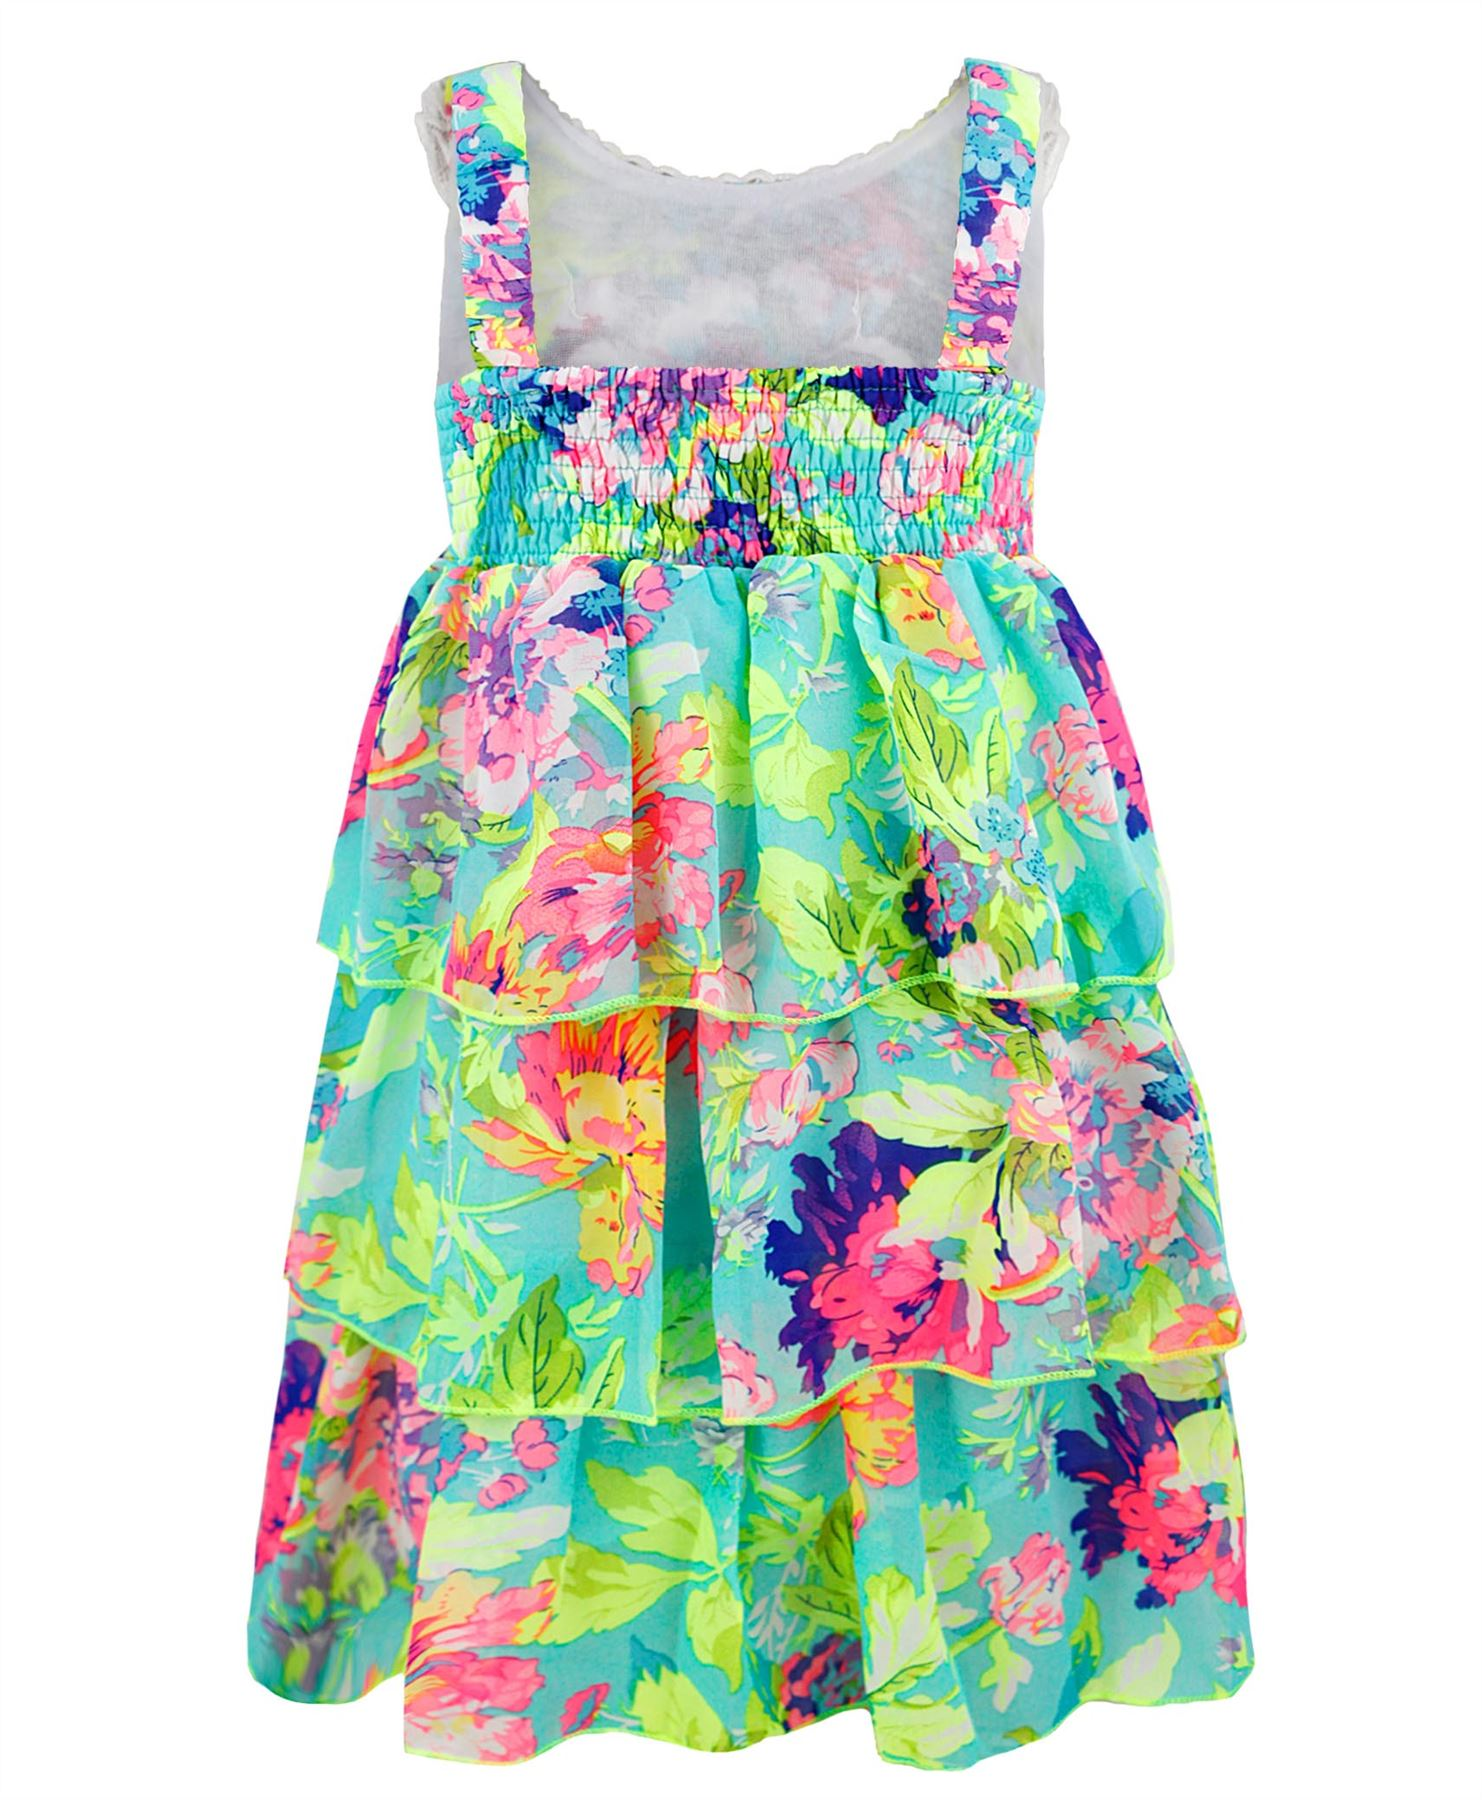 GIRLS-FLOWER-PRINT-3-LAYER-DRESS-KIDS-LACE-DIAMANTE-NECKLINE-PARTY-TOP-1-14-YEAR